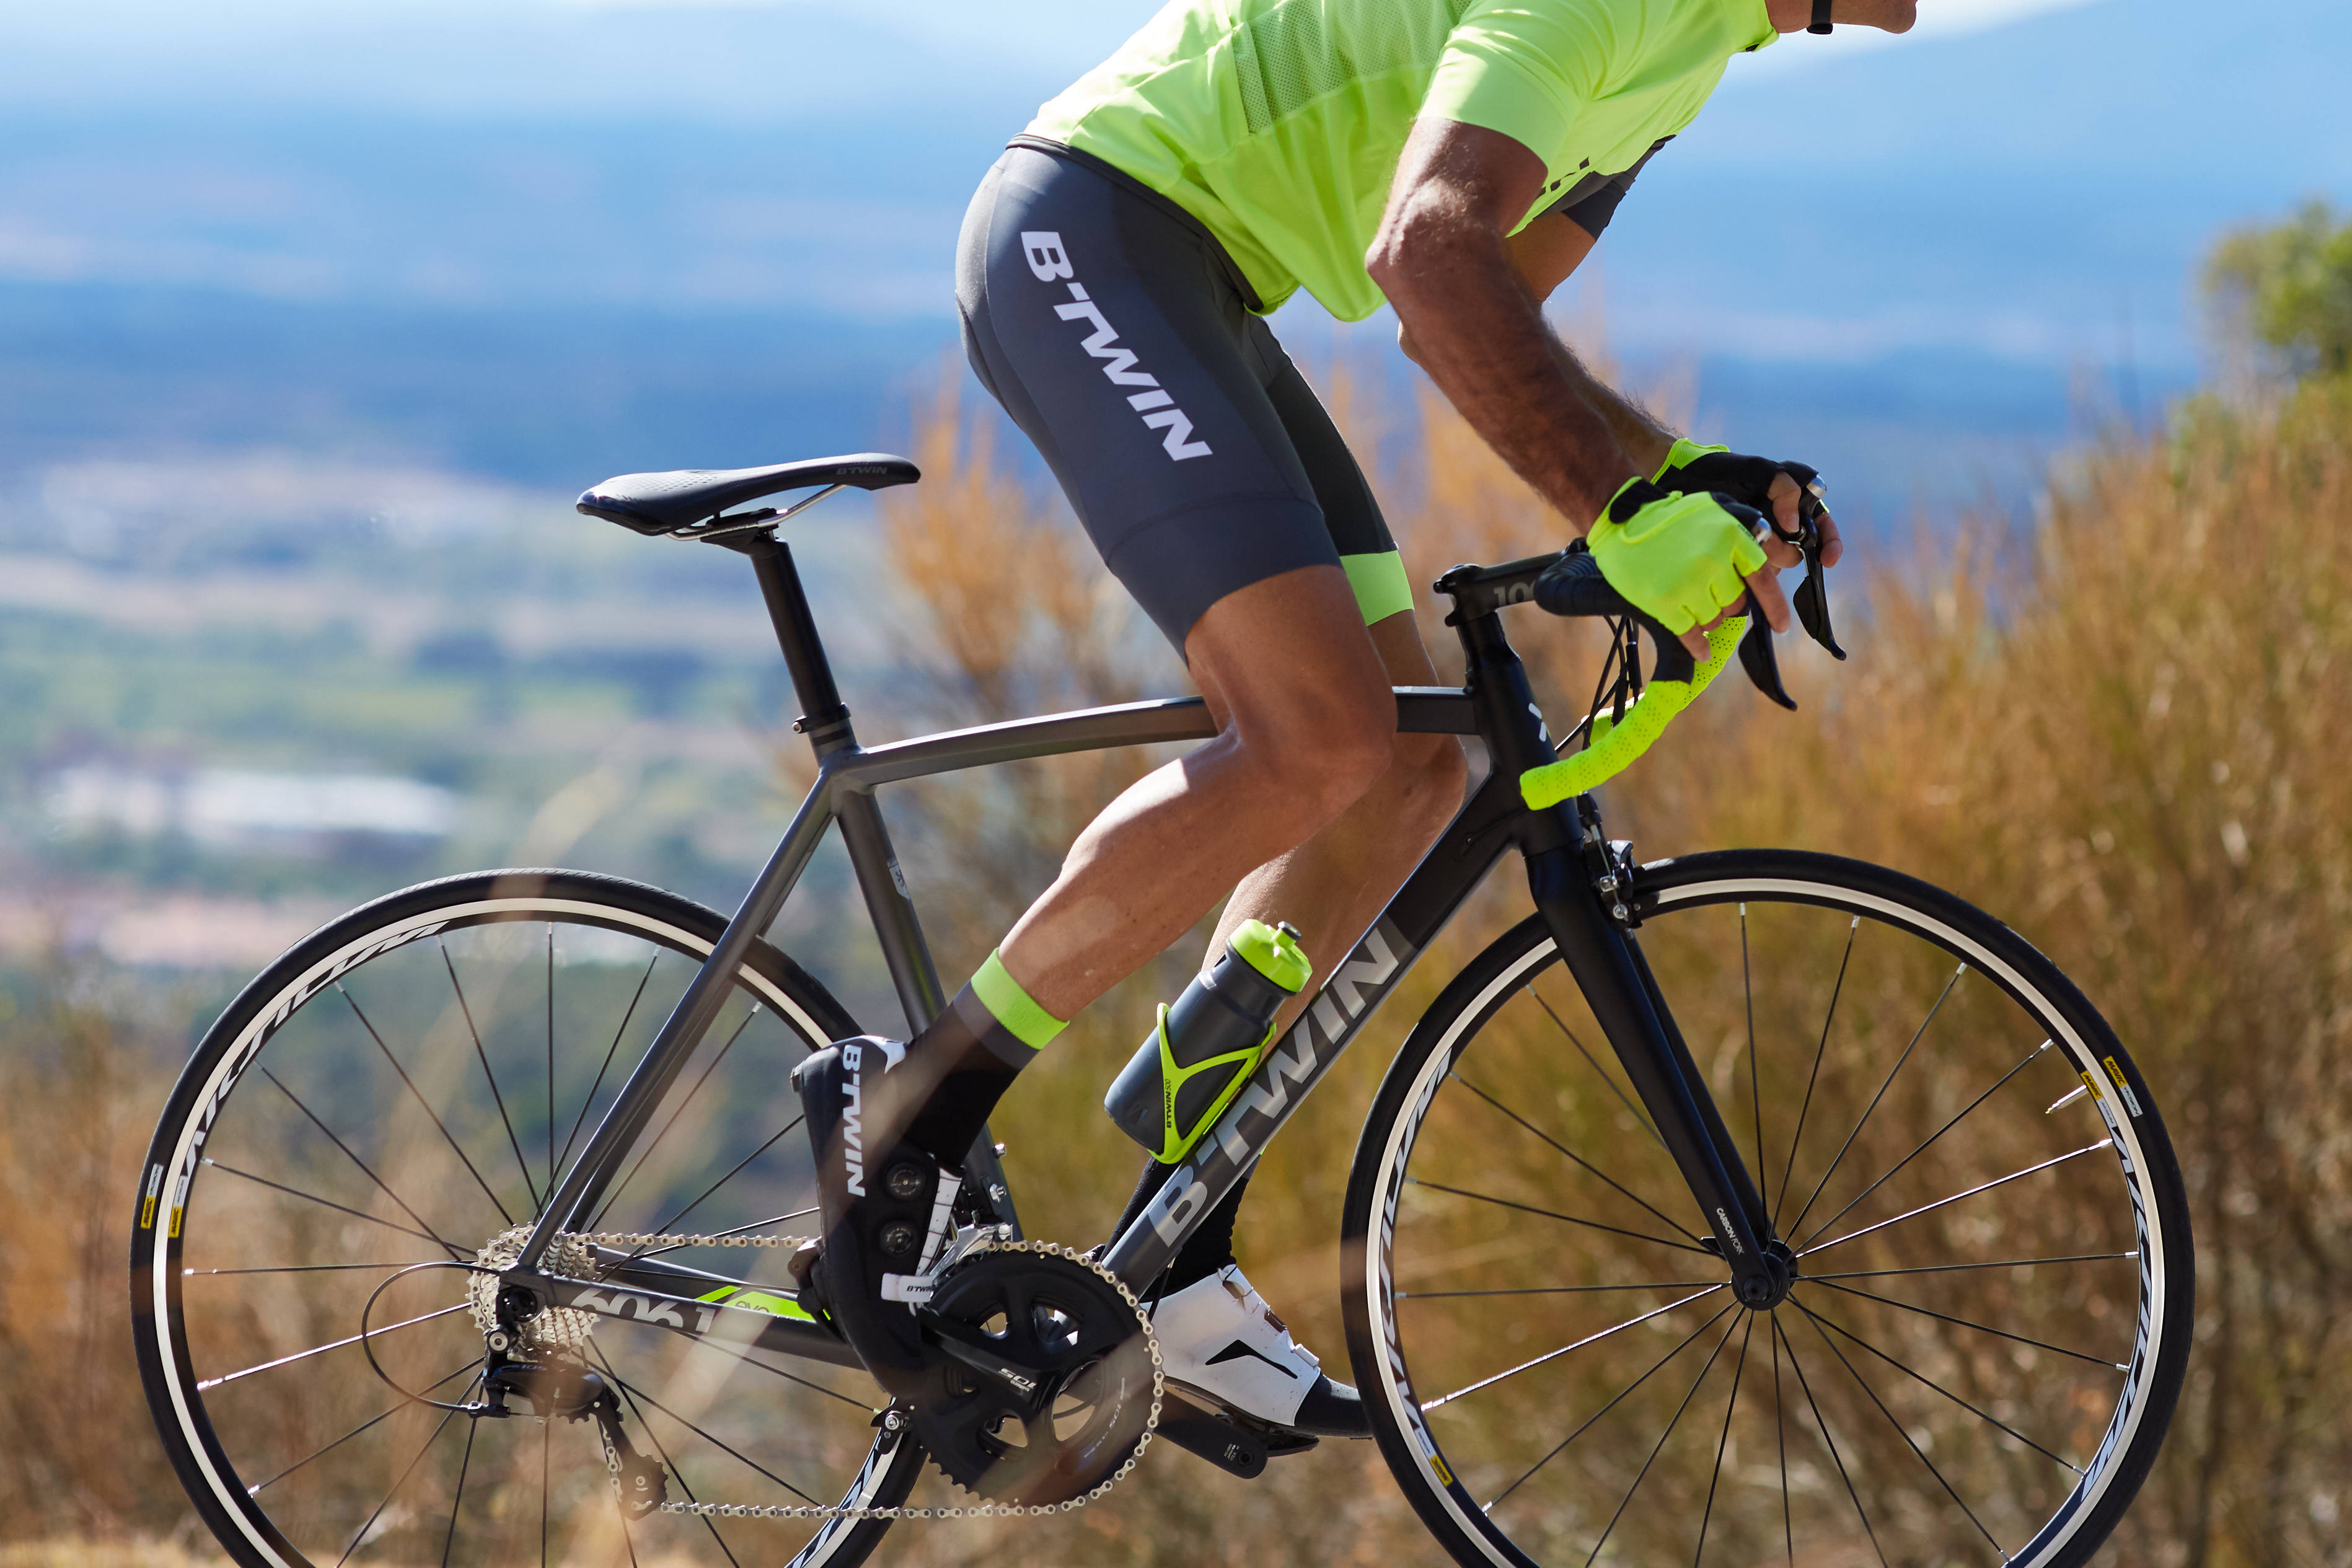 0bbd67d6a50 The best cheap road bikes 2019  beginner road bikes and commute machines  reviewed - Cycling Weekly